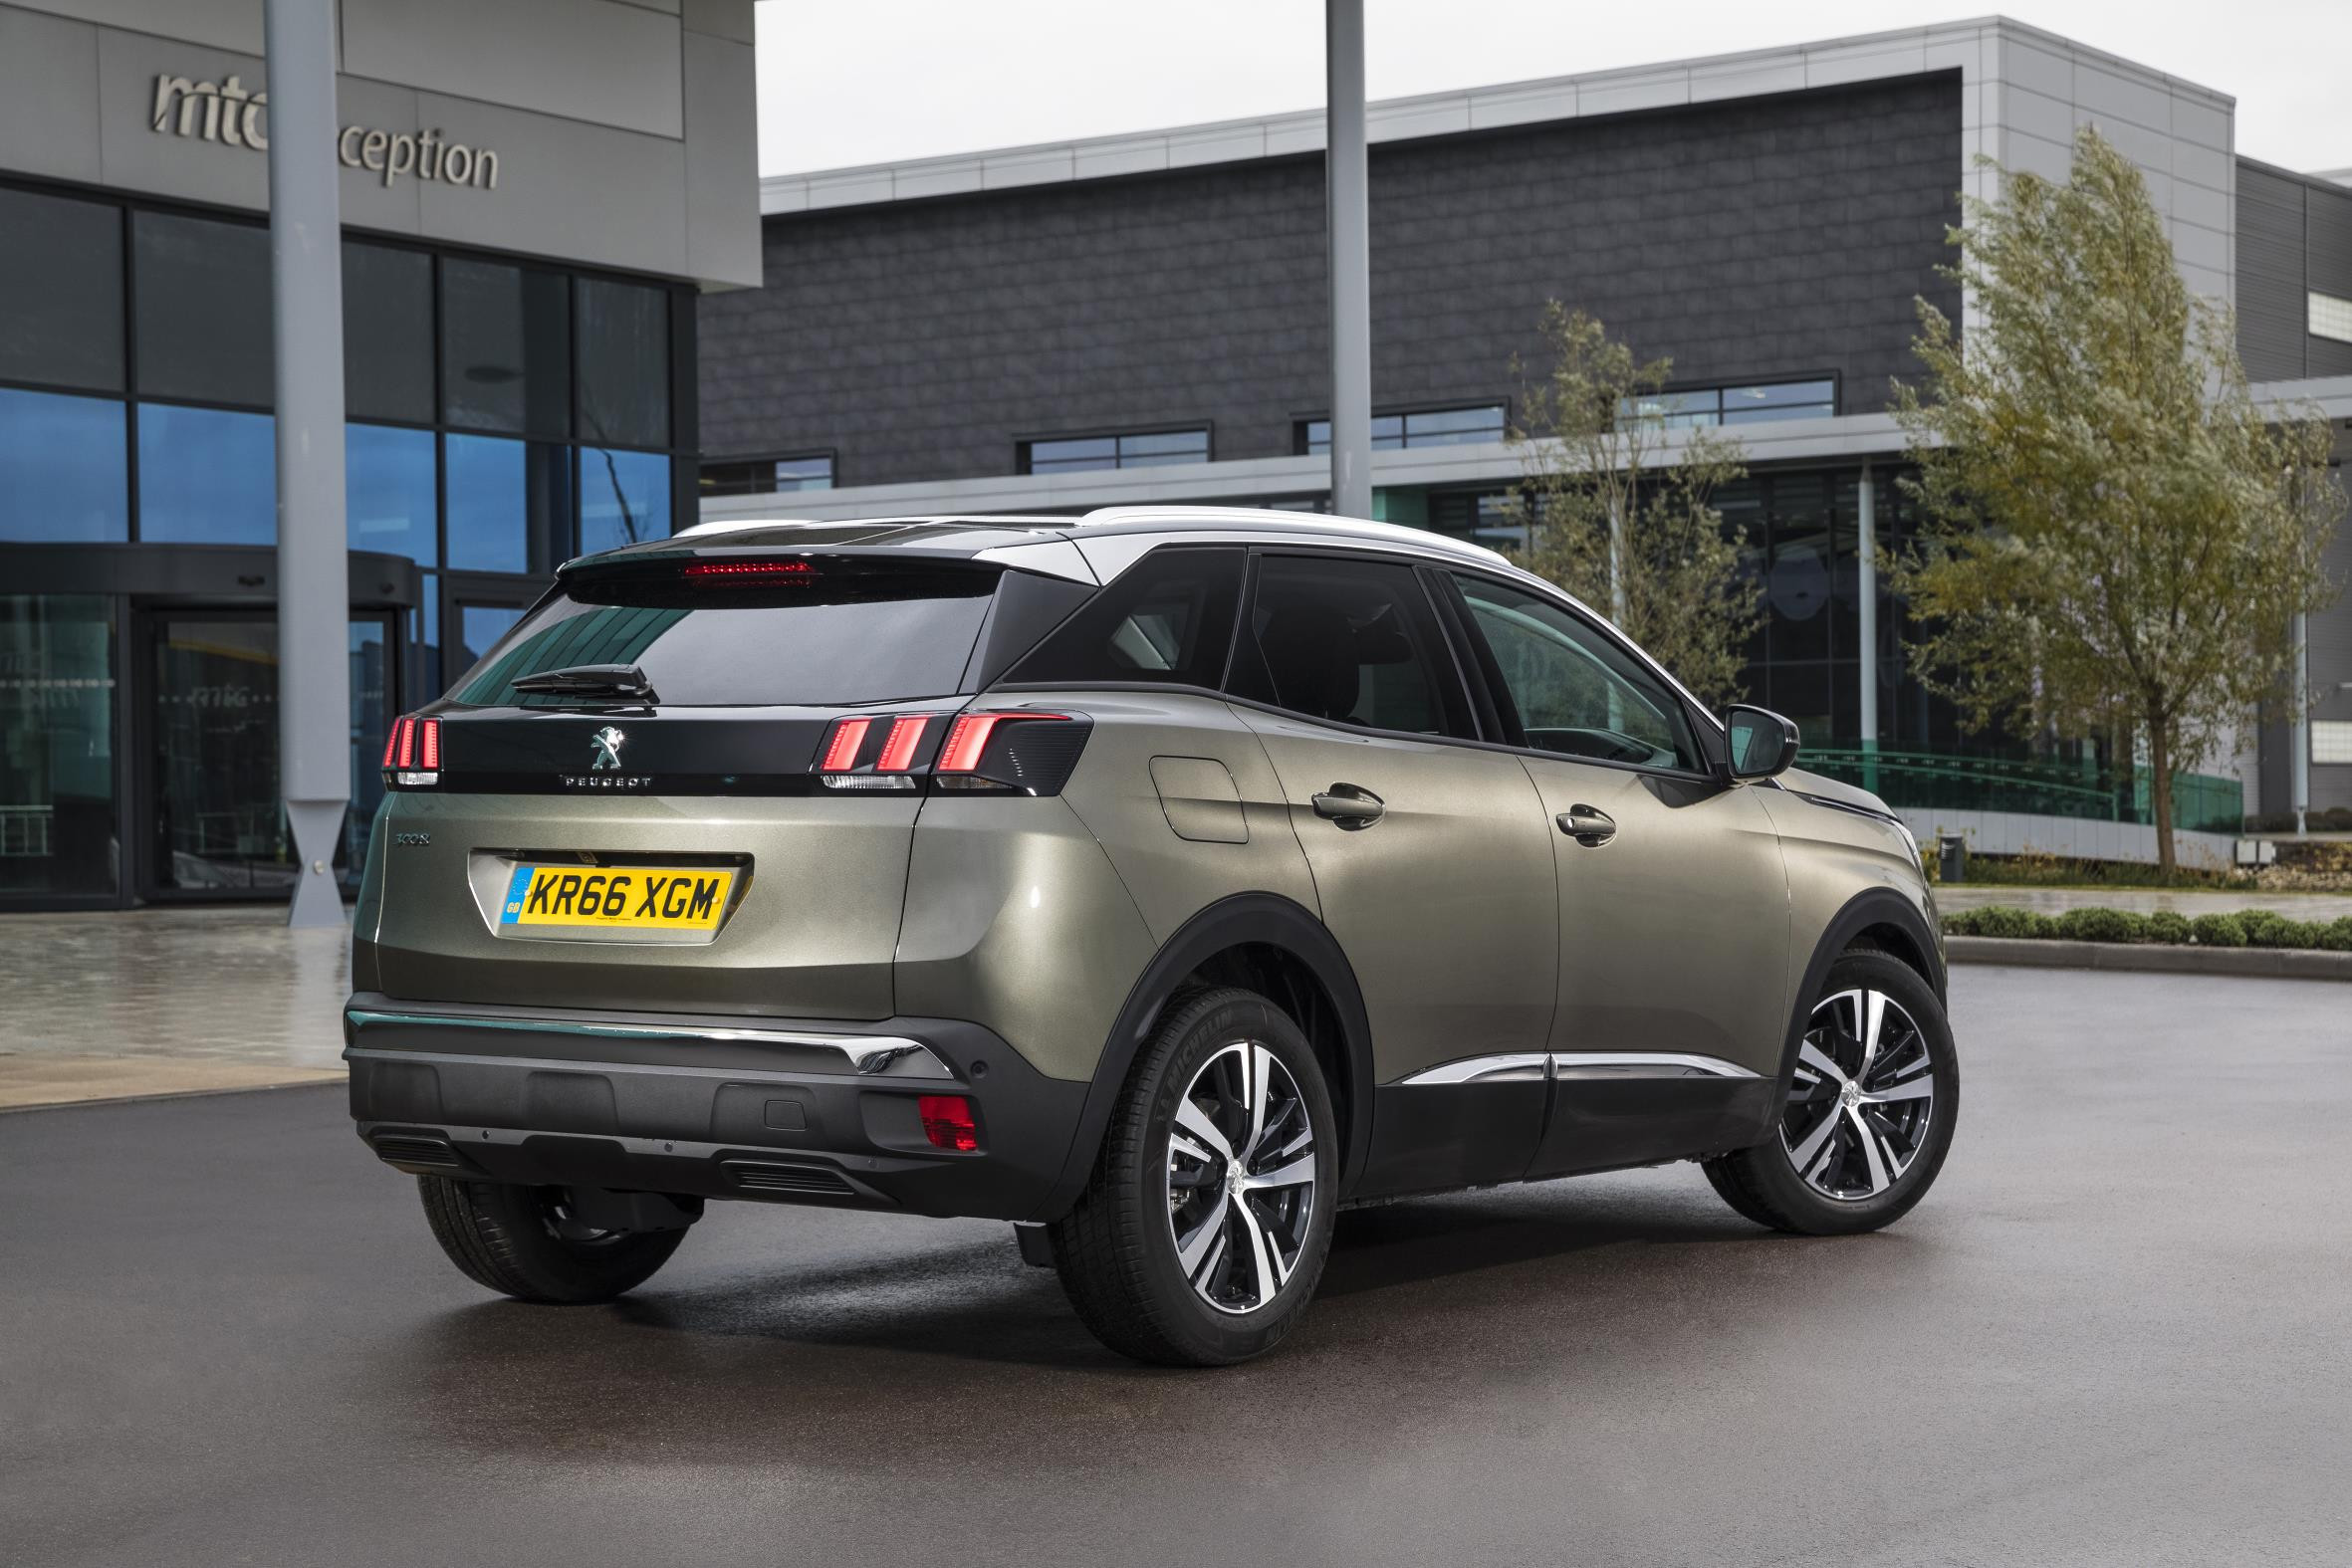 Grey Peugeot 3008 seen from two thirds rear view parked